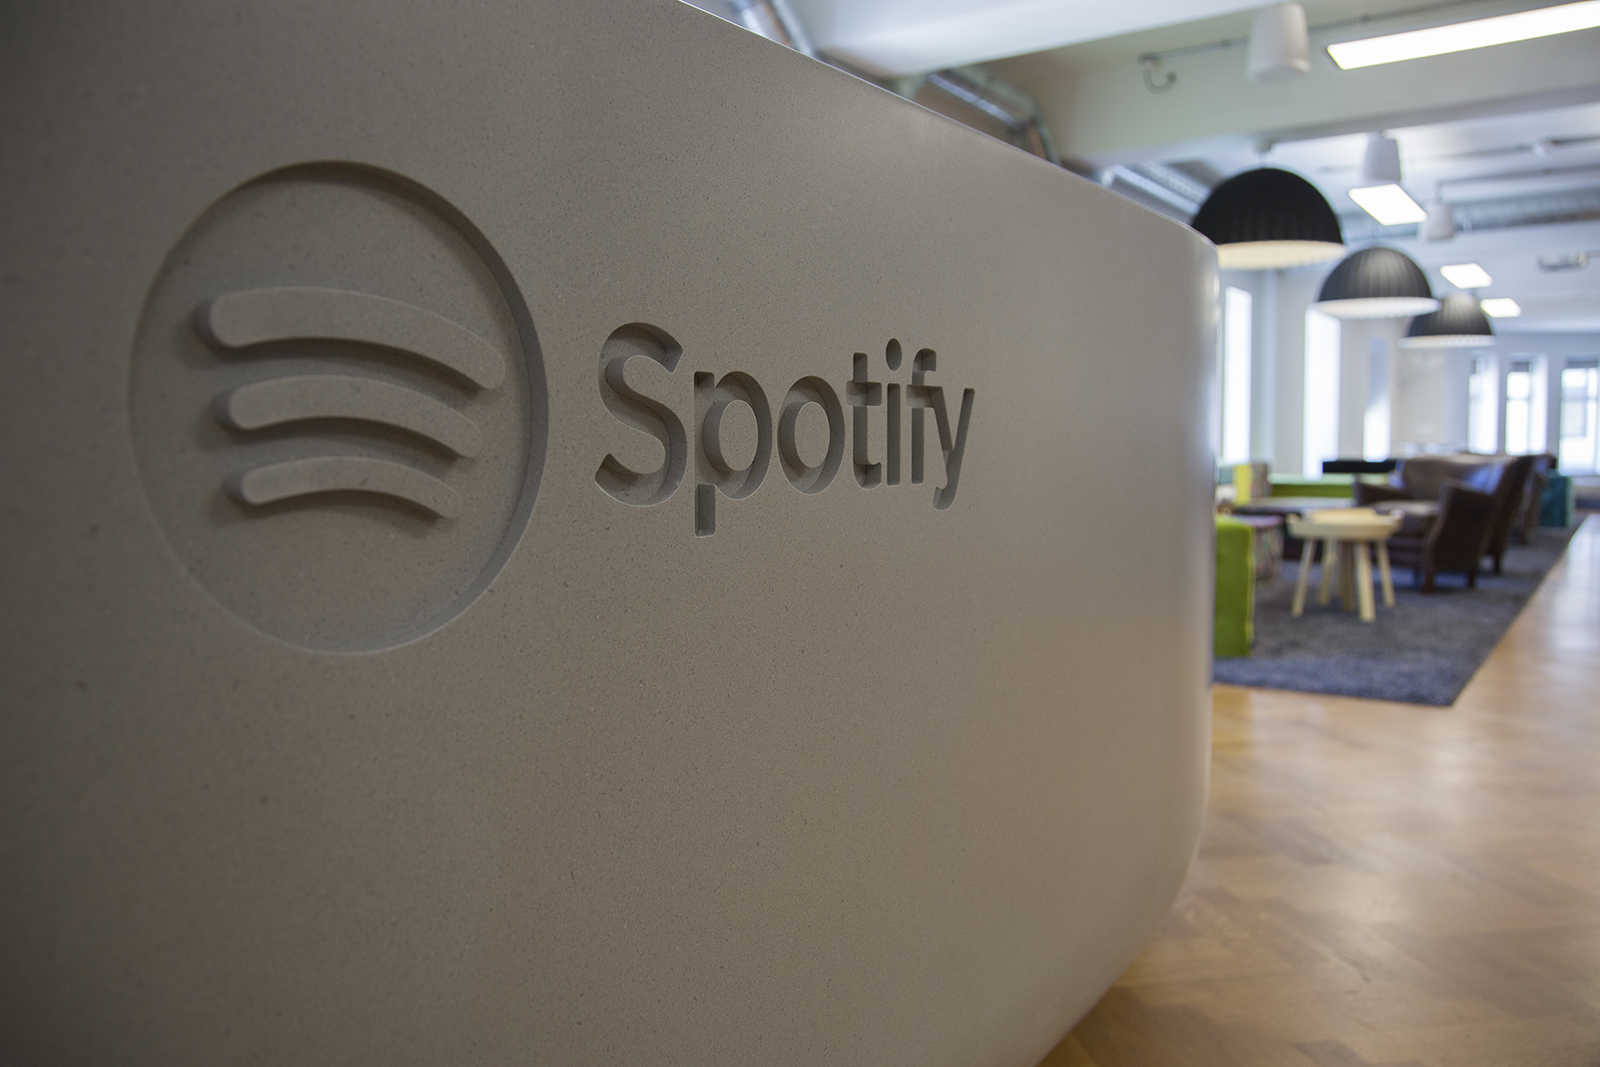 spotify-london-office-10